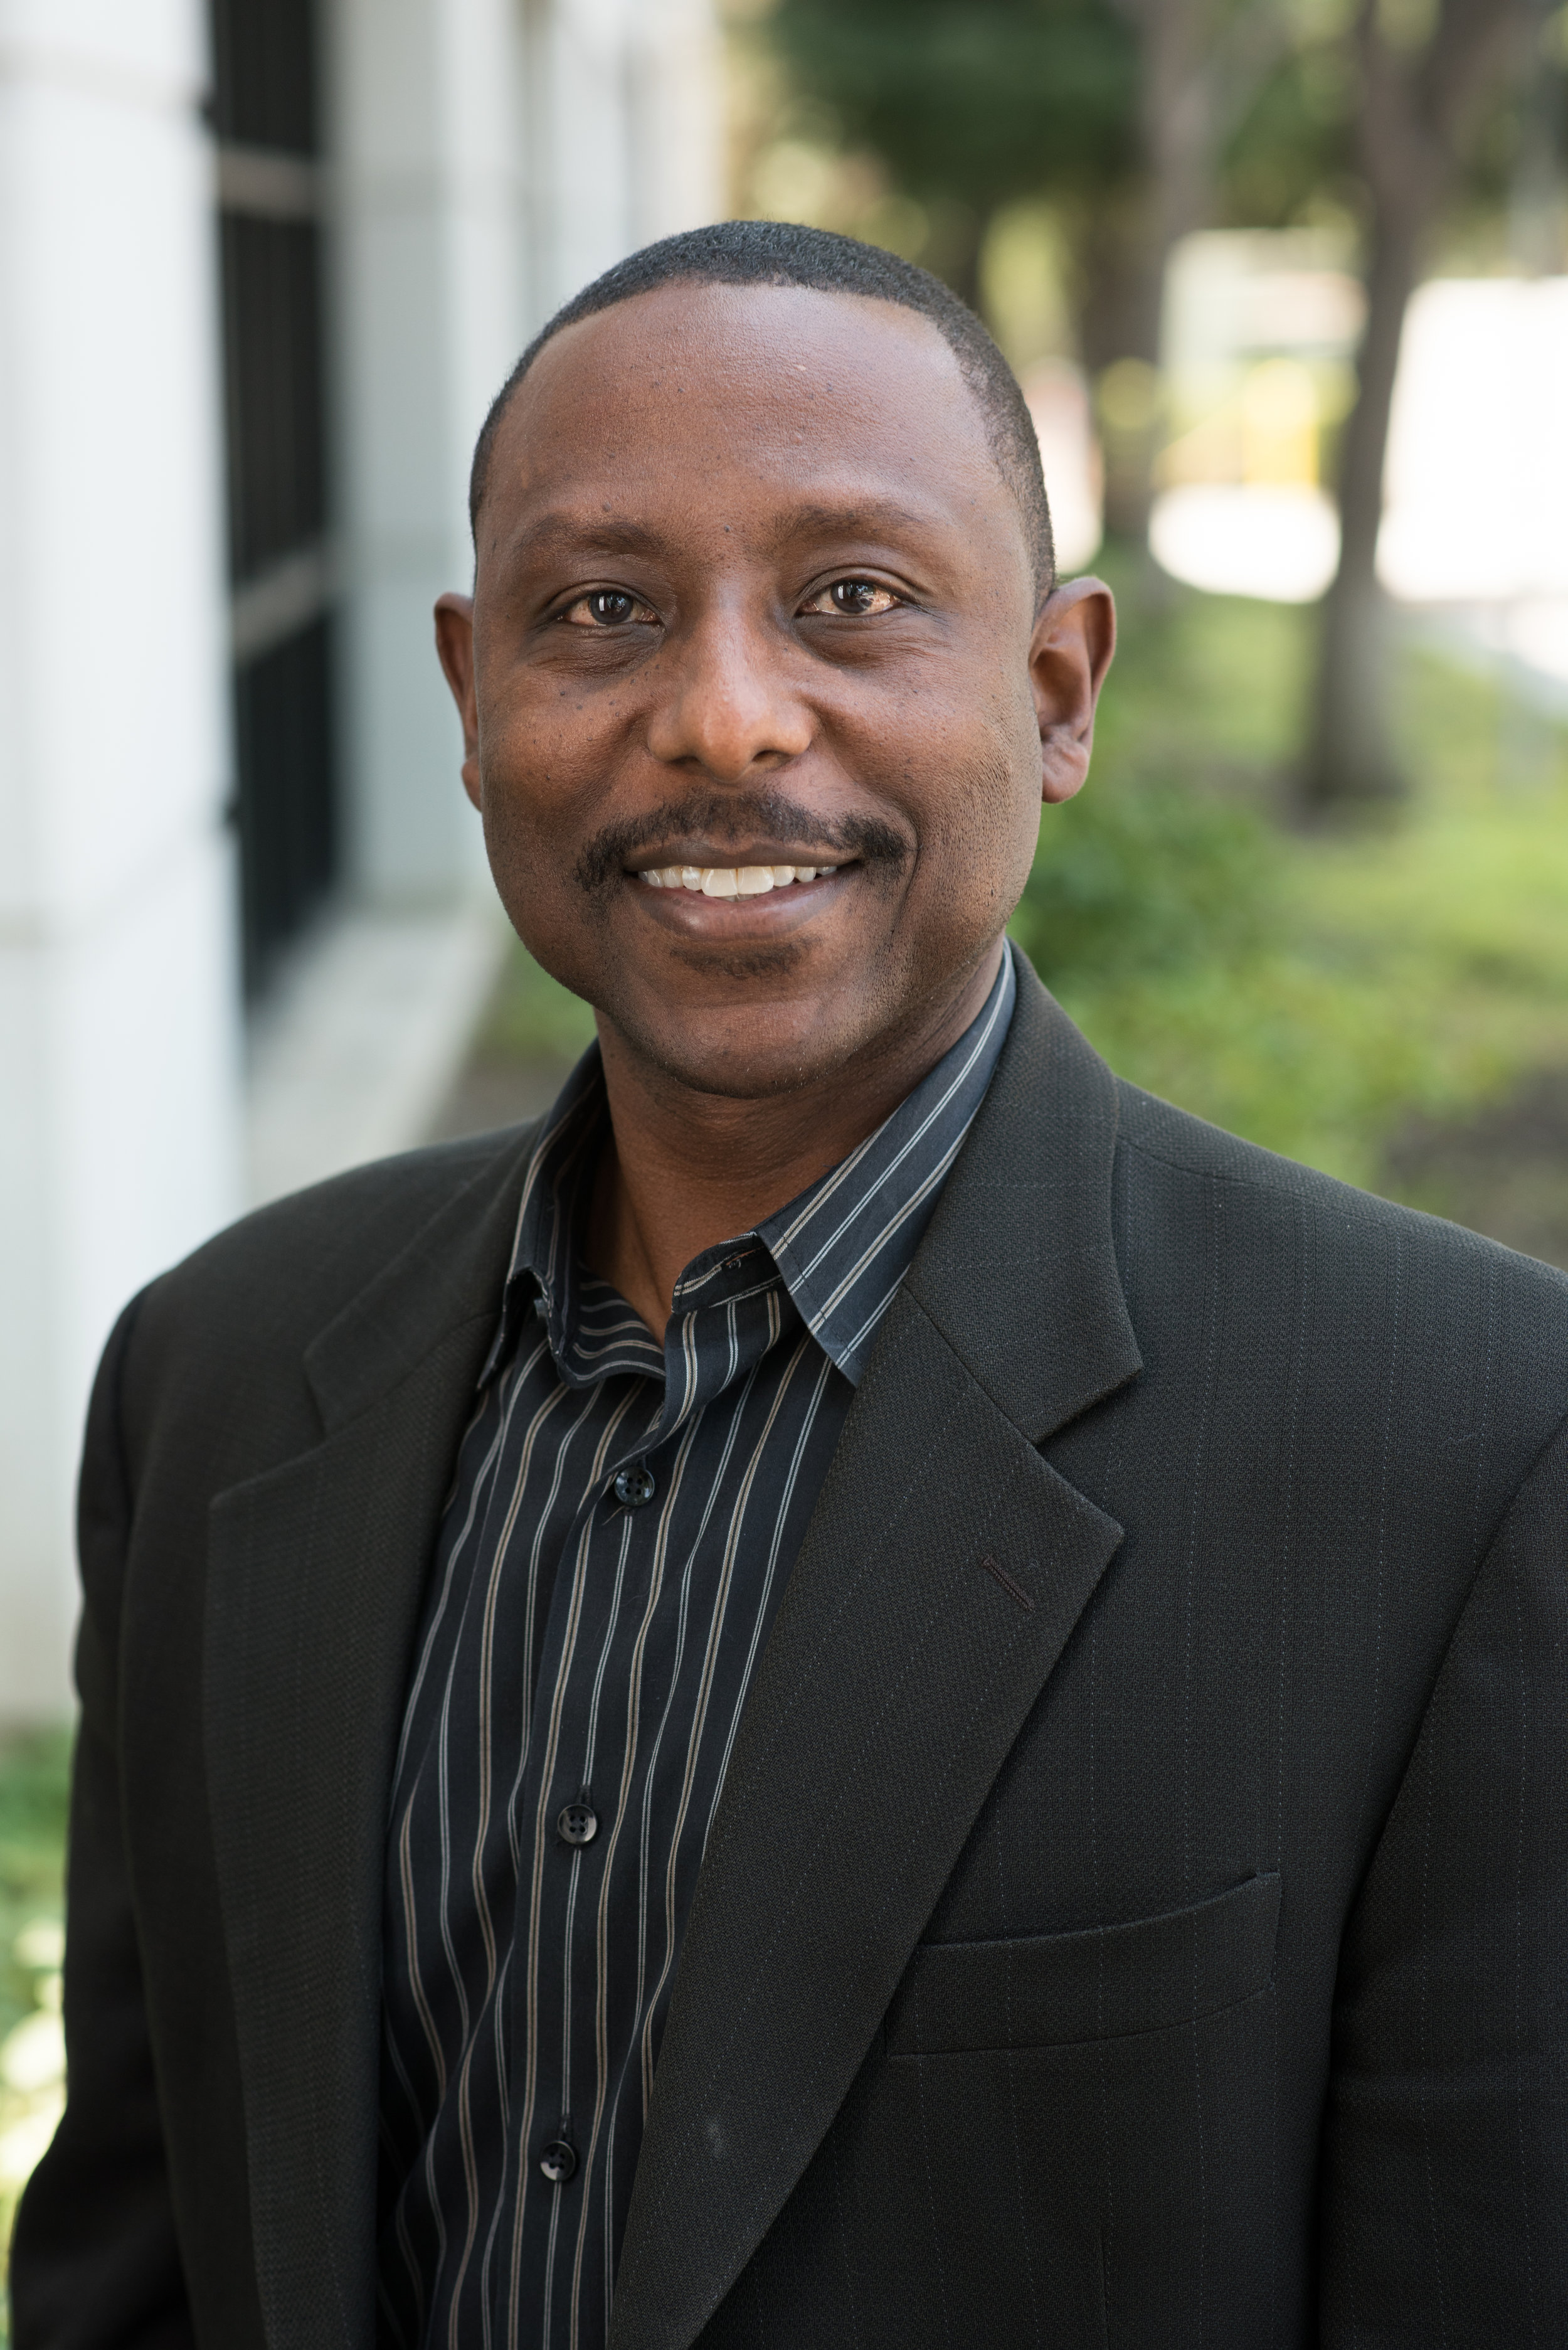 """Andre V. Chapman - Chief Executive Officer, Unity CareIn 1992, as a National Director of Sales and disheartened by the lack of other minorities in the technology field, Mr. Chapman redirected his focus and founded Unity Care Group, Inc. with the goal of developing educational and social programs designed to enrich the lives of disadvantaged youth. As Founder and CEO, he is dedicated to making a positive impact on the youth in our community by providing opportunities (physically, emotionally, and spiritually) that will enhance their lives and teach them how to become productive citizens in our society. Mr. Chapman has received numerous awards of distinction and commendation honoring his tireless dedication and community involvement. His recognitions have included: """"Outstanding/Invaluable Community Service"""" by United States Congress, """"Human Relations, Board of Supervisors Award"""" by California State Senate/Assembly, """"Partner of the Decade"""" by the City of San Jose, """"Circle of Friends"""" Award by San Jose/Silicon Valley NAACP"""". Mr. Chapman is also the Chair of the Social Services Advisory Commission, Santa Clara County and current Network Development committee member of the American Leadership Forum Silicon Valley (ALF-SV) and a current ALF Senior Fellow (Class XXIII). Unity Care is a multi-service culturally proficient youth and family development."""